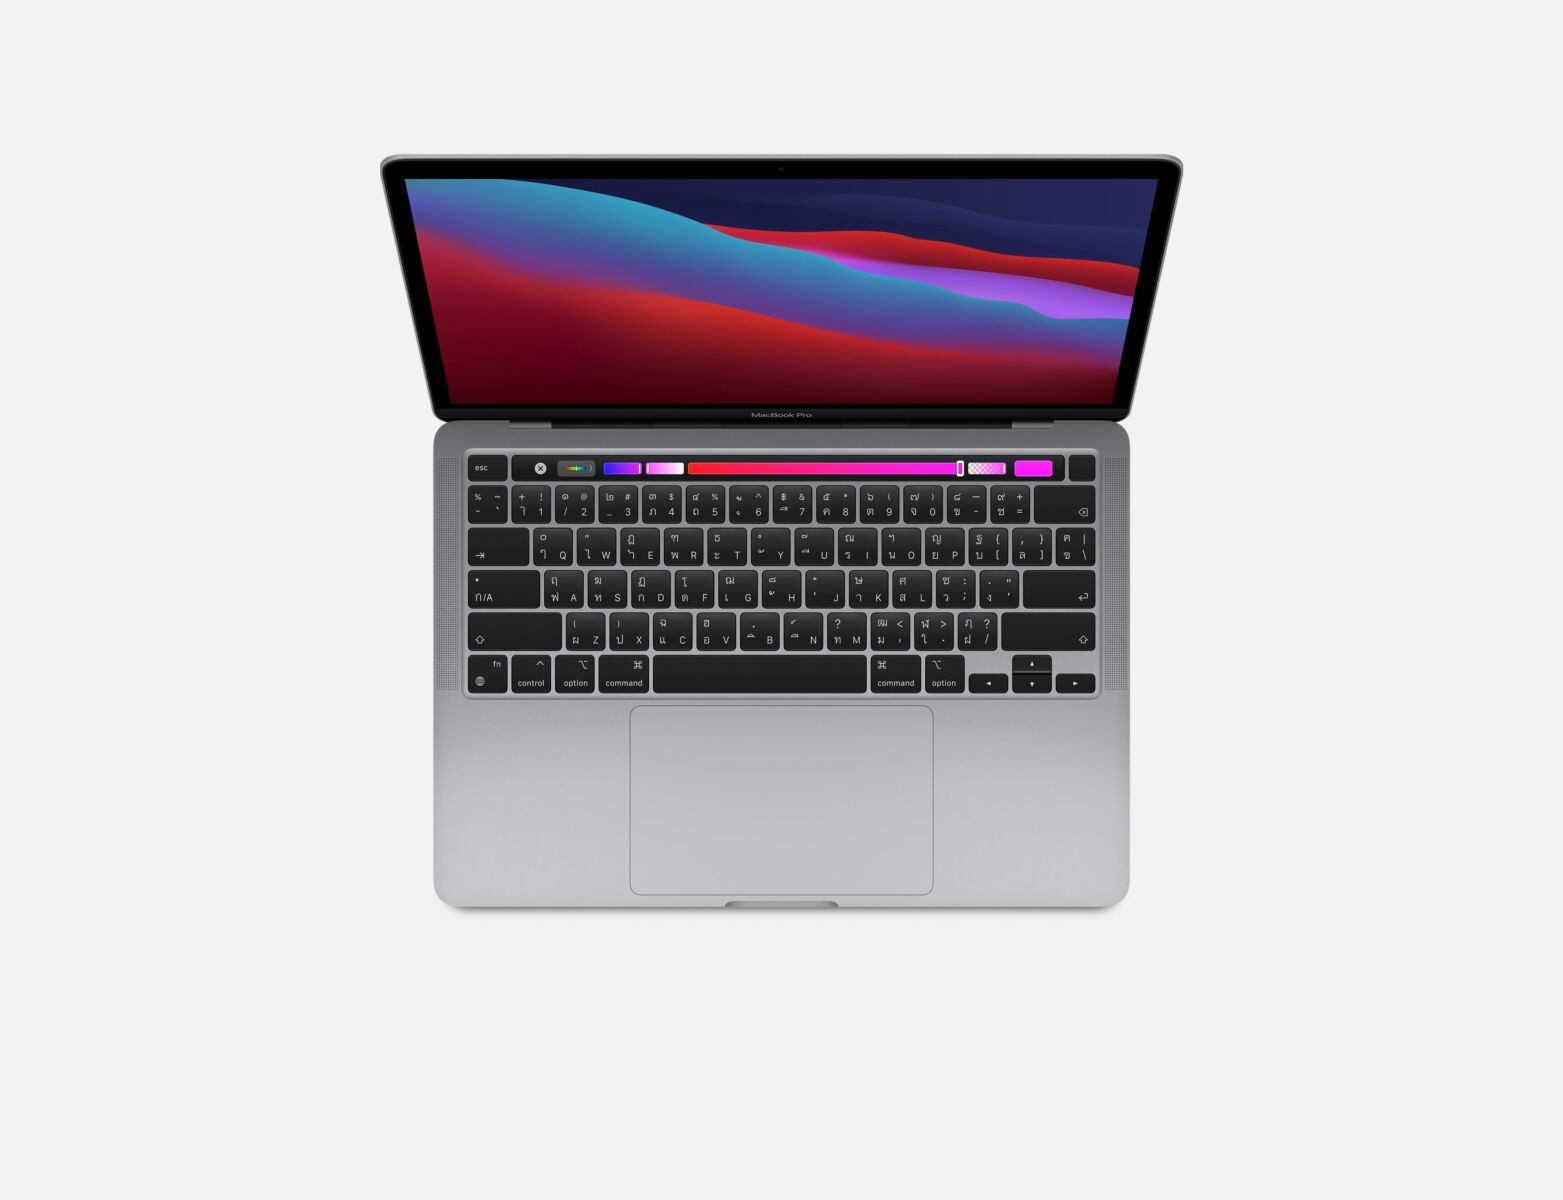 MacBook Pro 13 (M1, 2020) - one of the best laptops for creativity